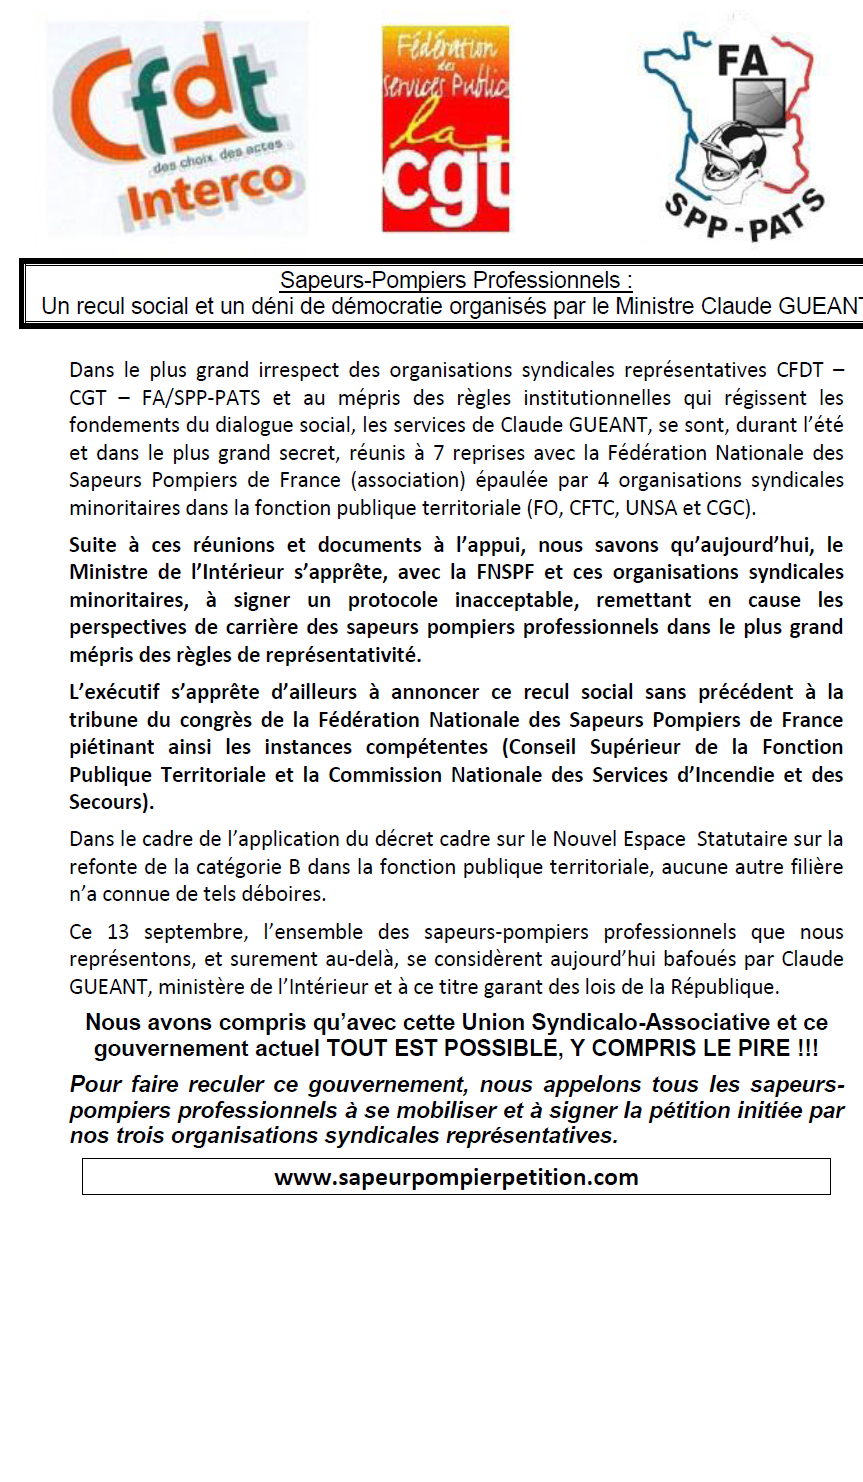 TRACT-FILIERE-copie-1.PNG